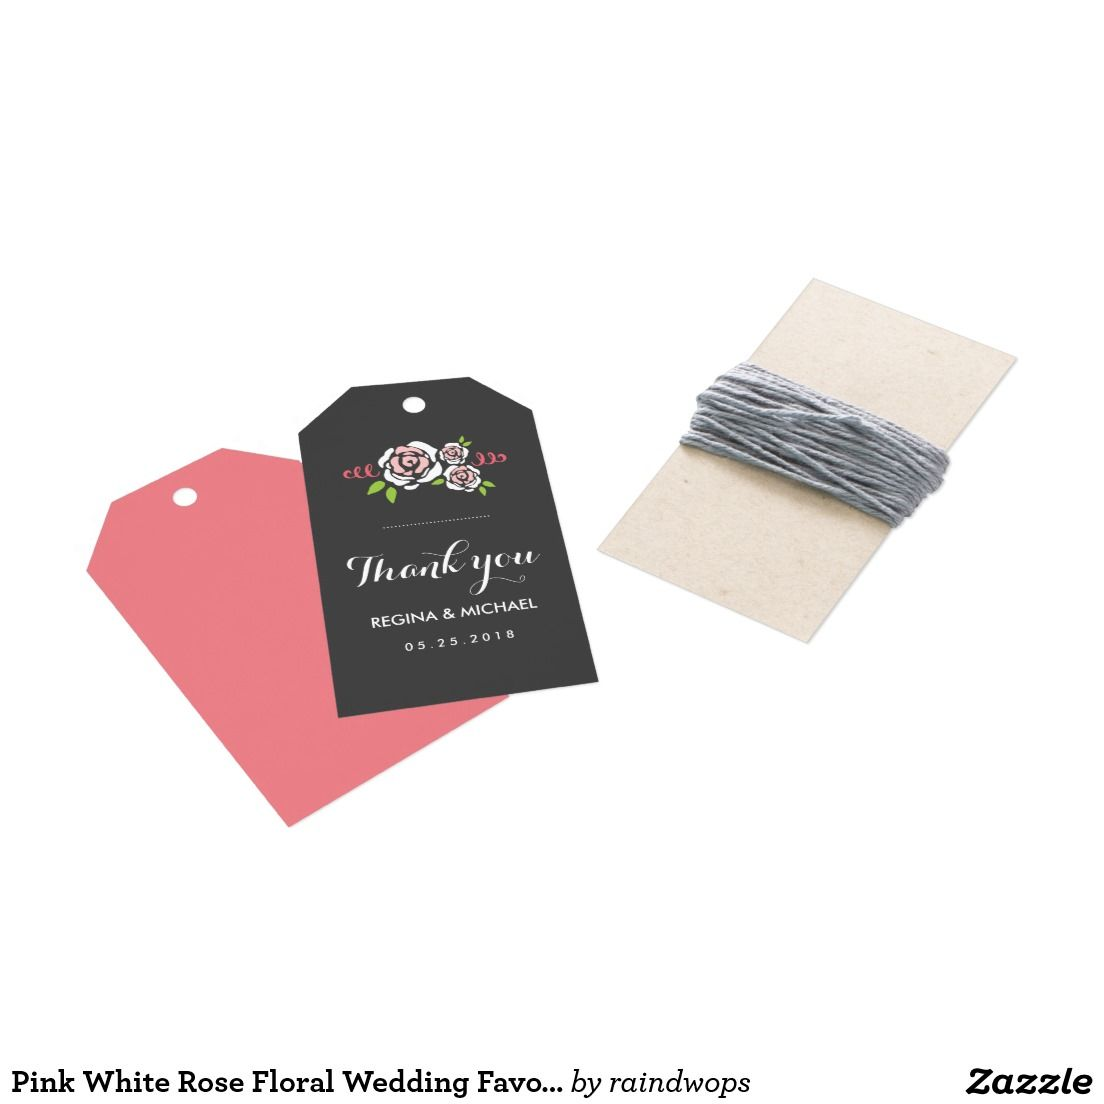 Pink White Rose Floral Wedding Favor Gift Tag | Floral wedding ...